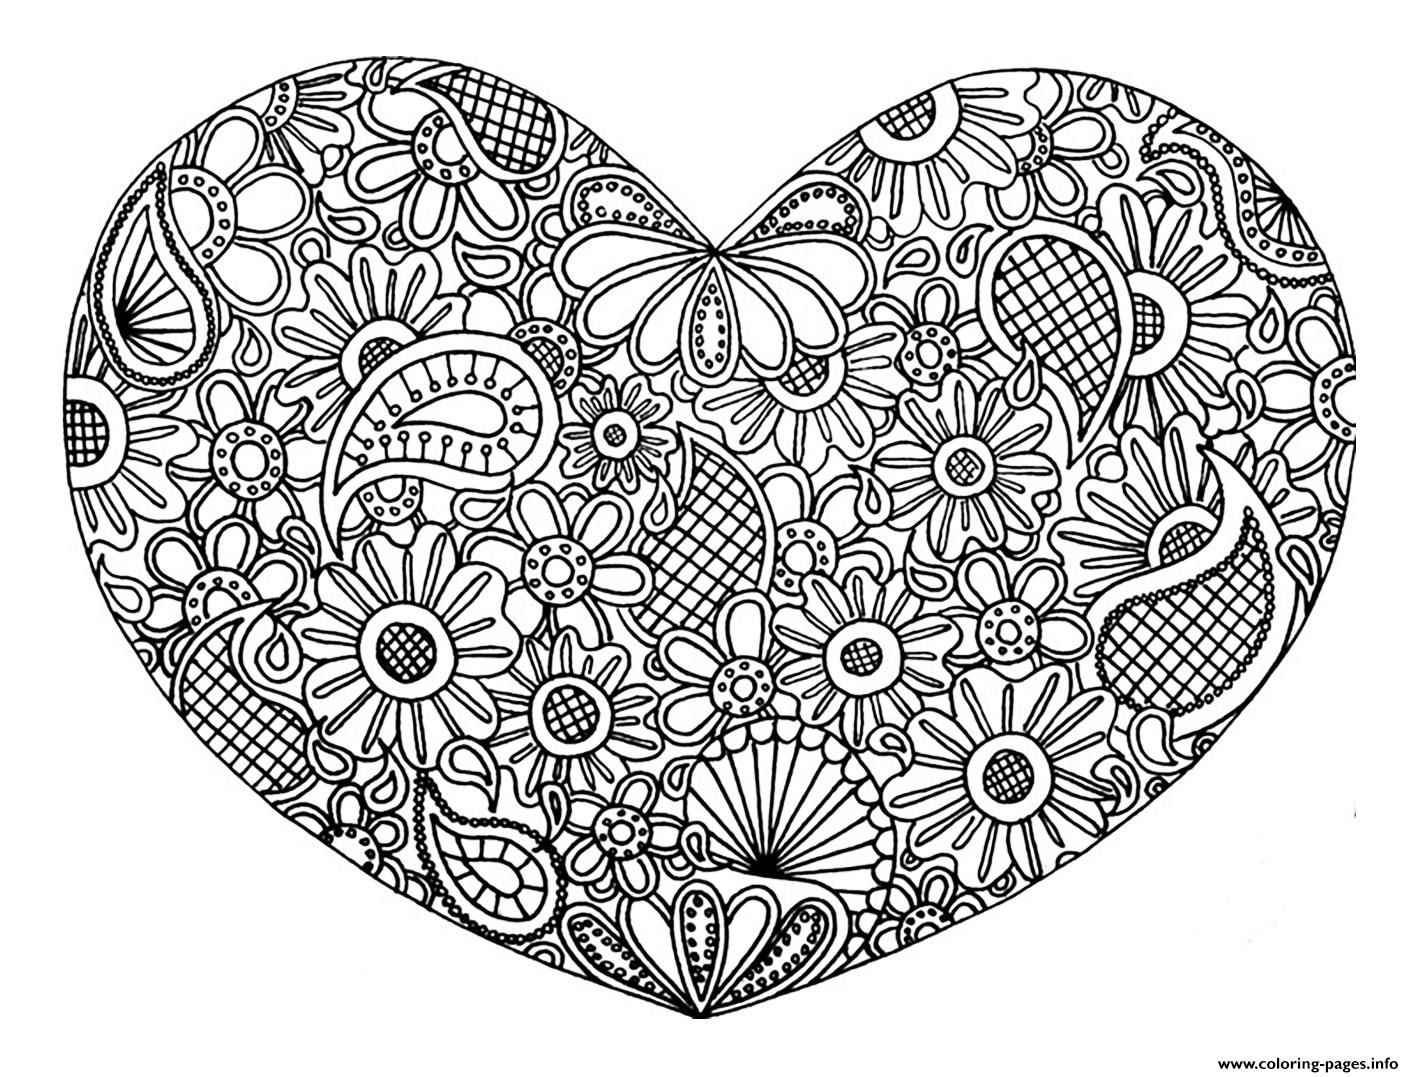 coloring pages for adults hearts Adult Heart Mandala Fleurs Zen 2017 Coloring Pages Printable coloring pages for adults hearts